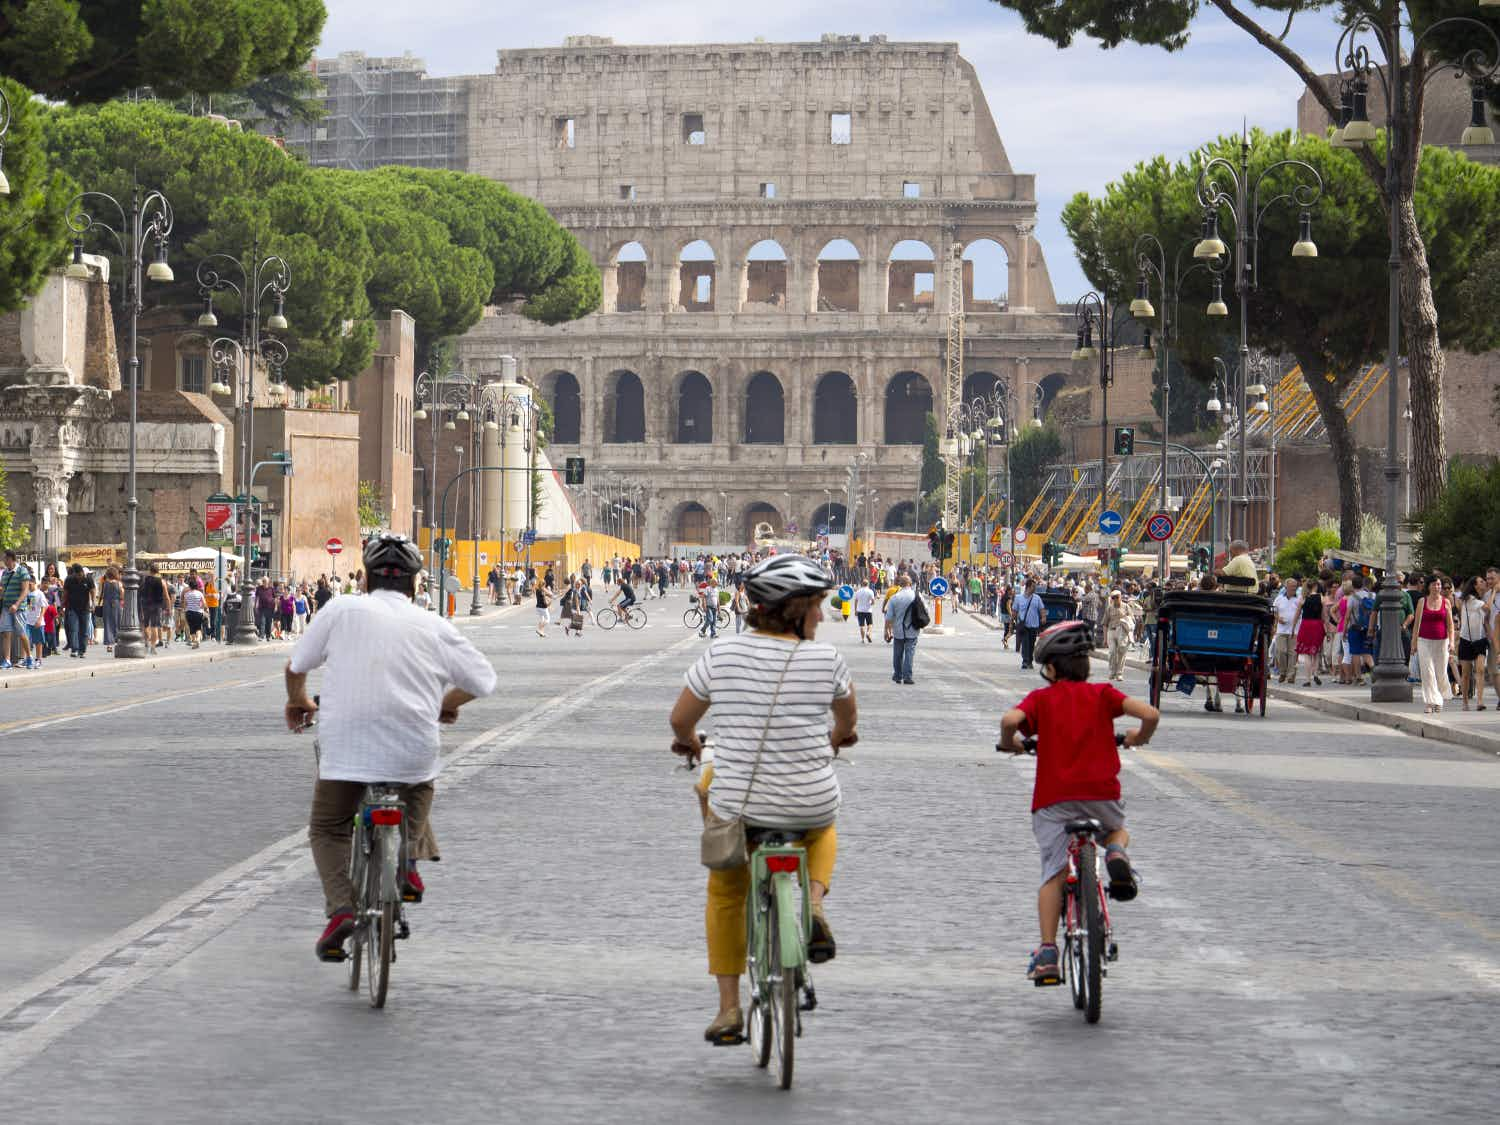 Visiting Rome with kids: gladiators, gardens and gelato